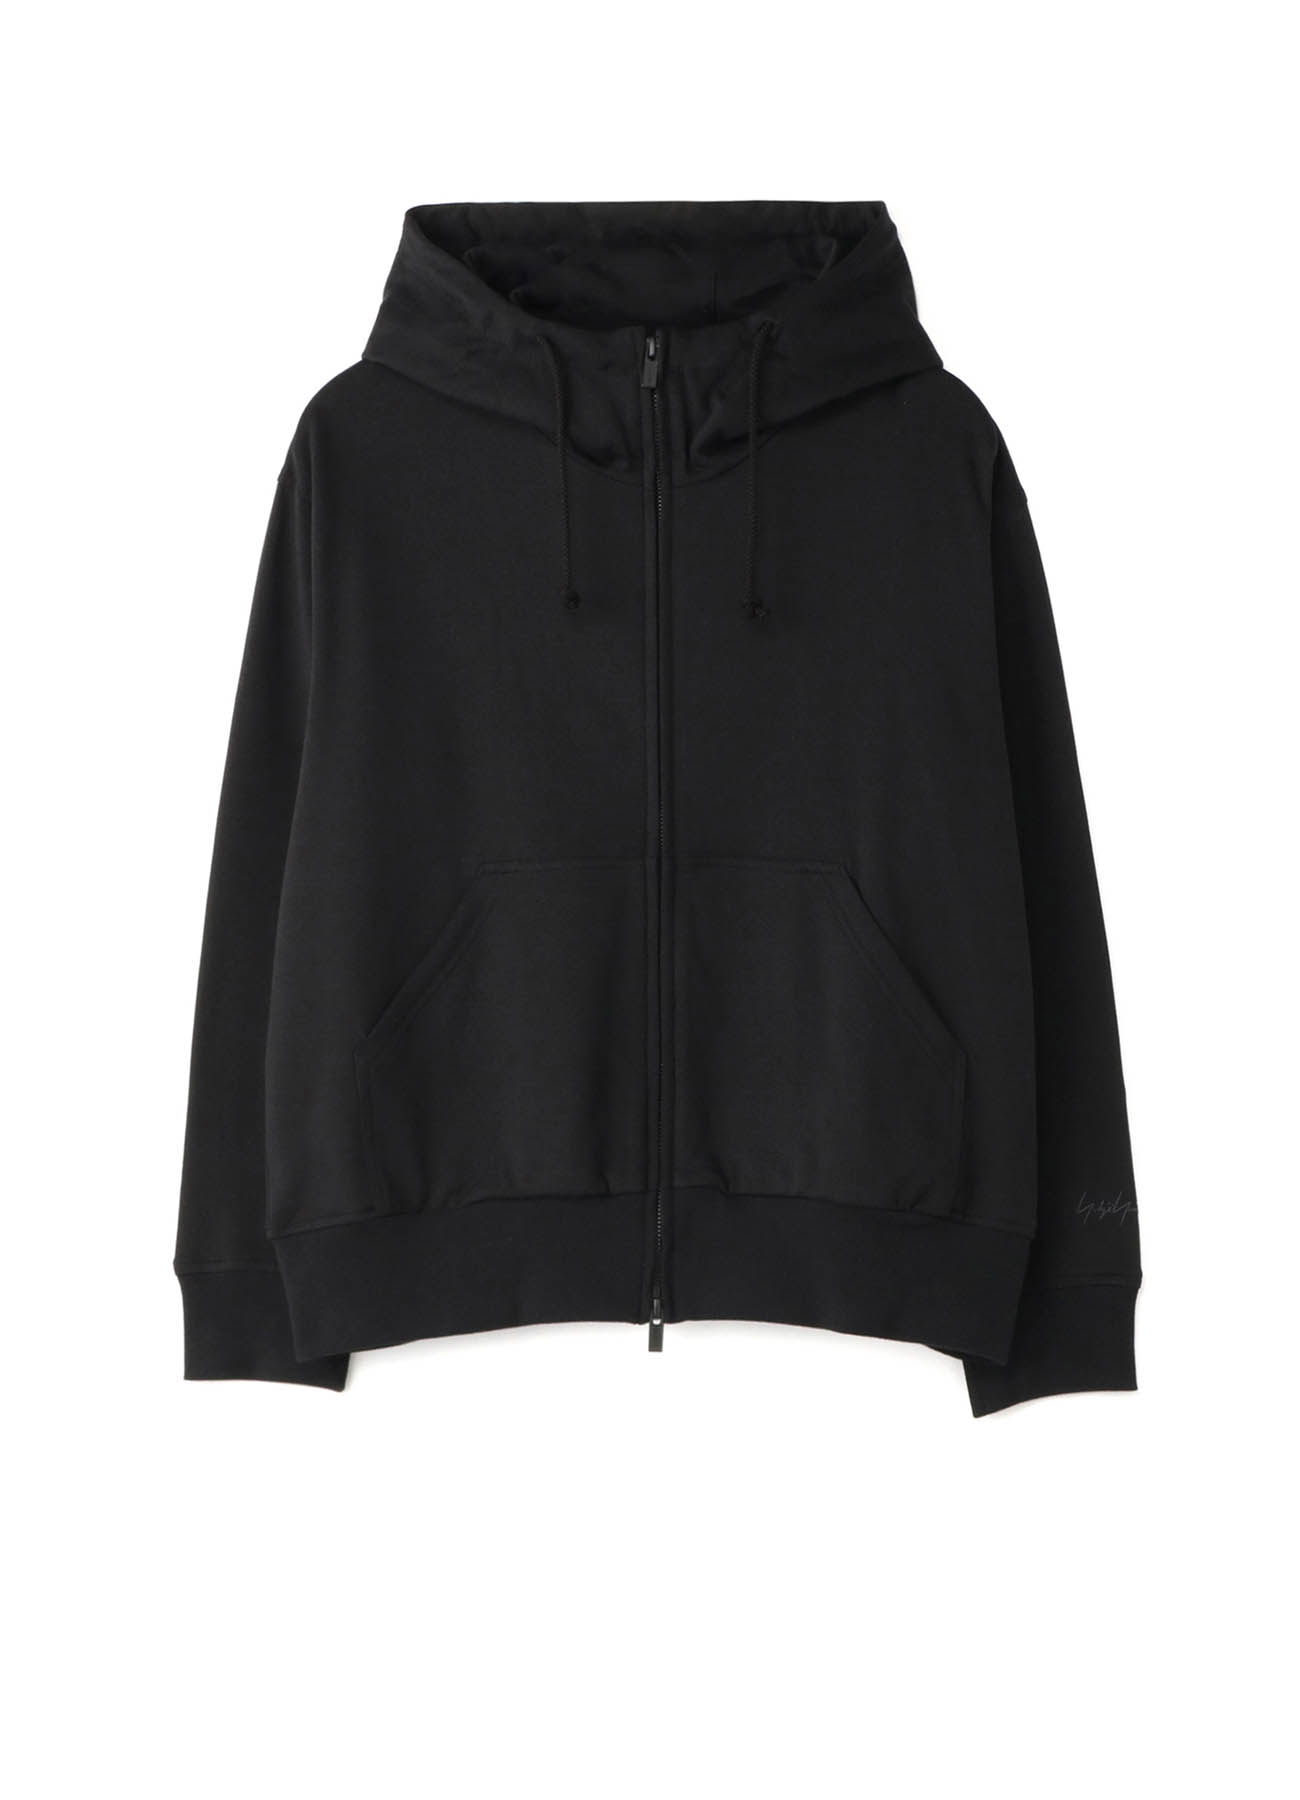 EMBROIDERY HOODIE